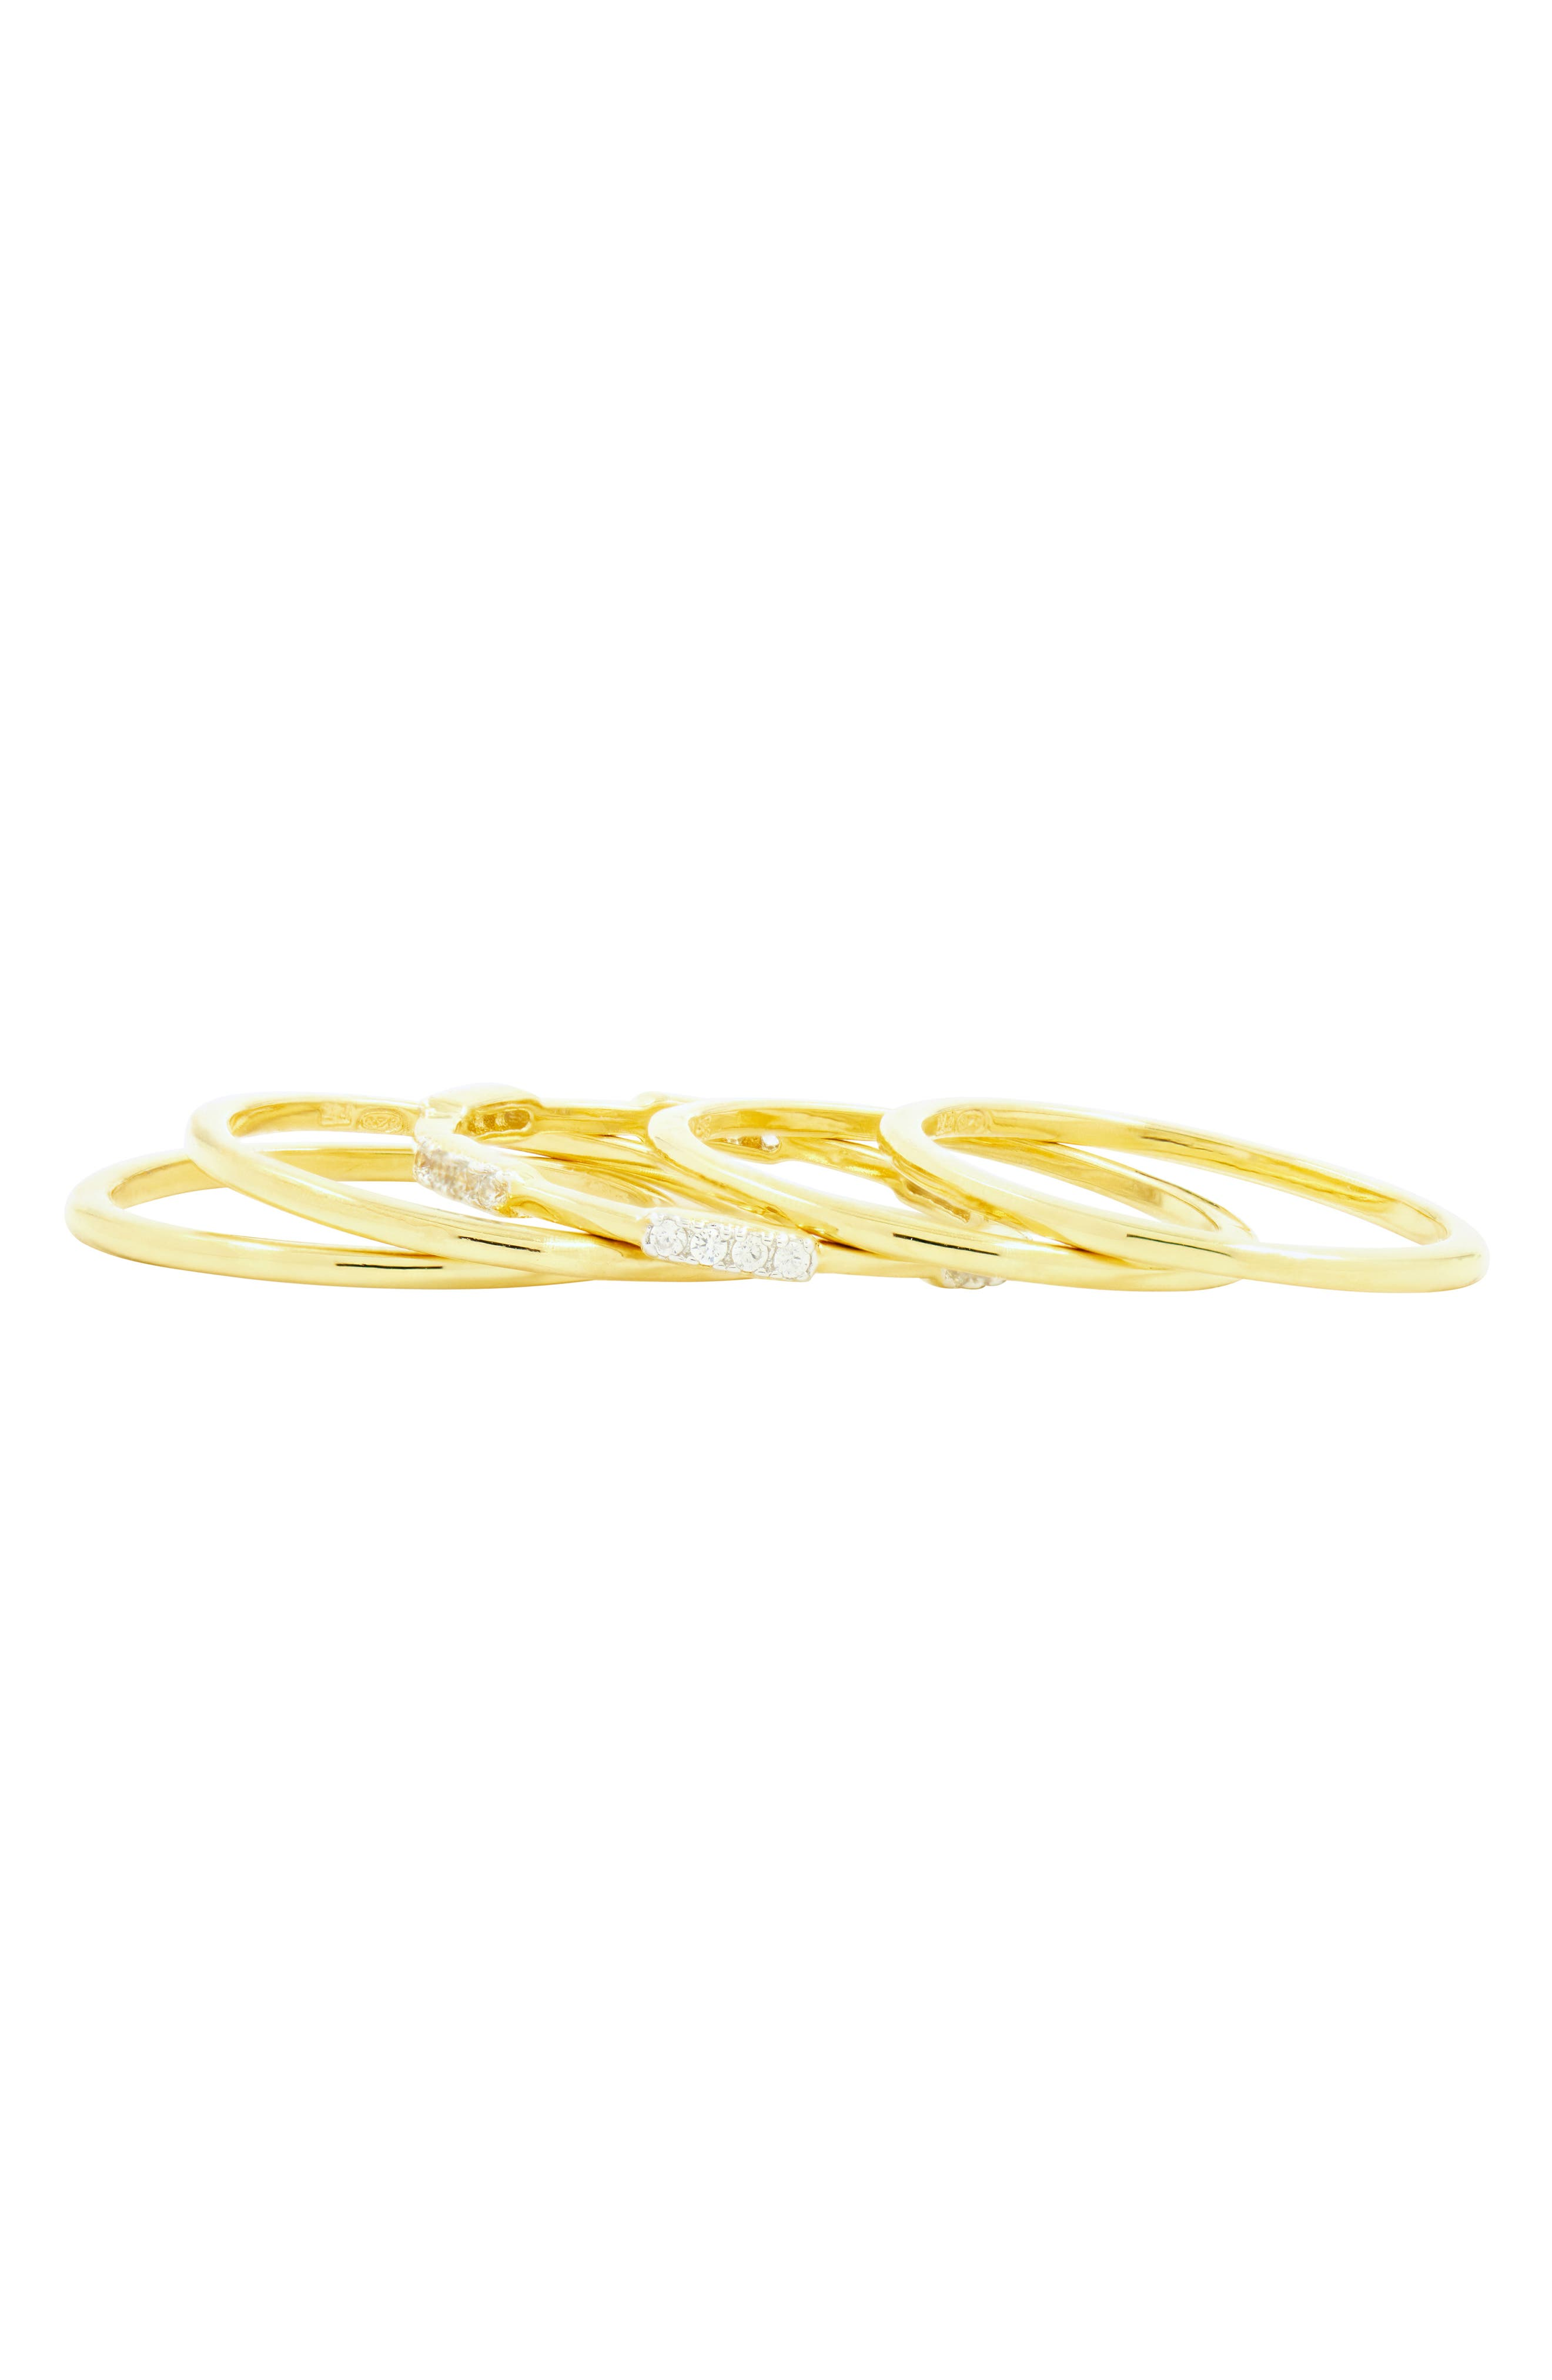 Radiance Stacking Ring,                             Alternate thumbnail 3, color,                             Silver/ Gold